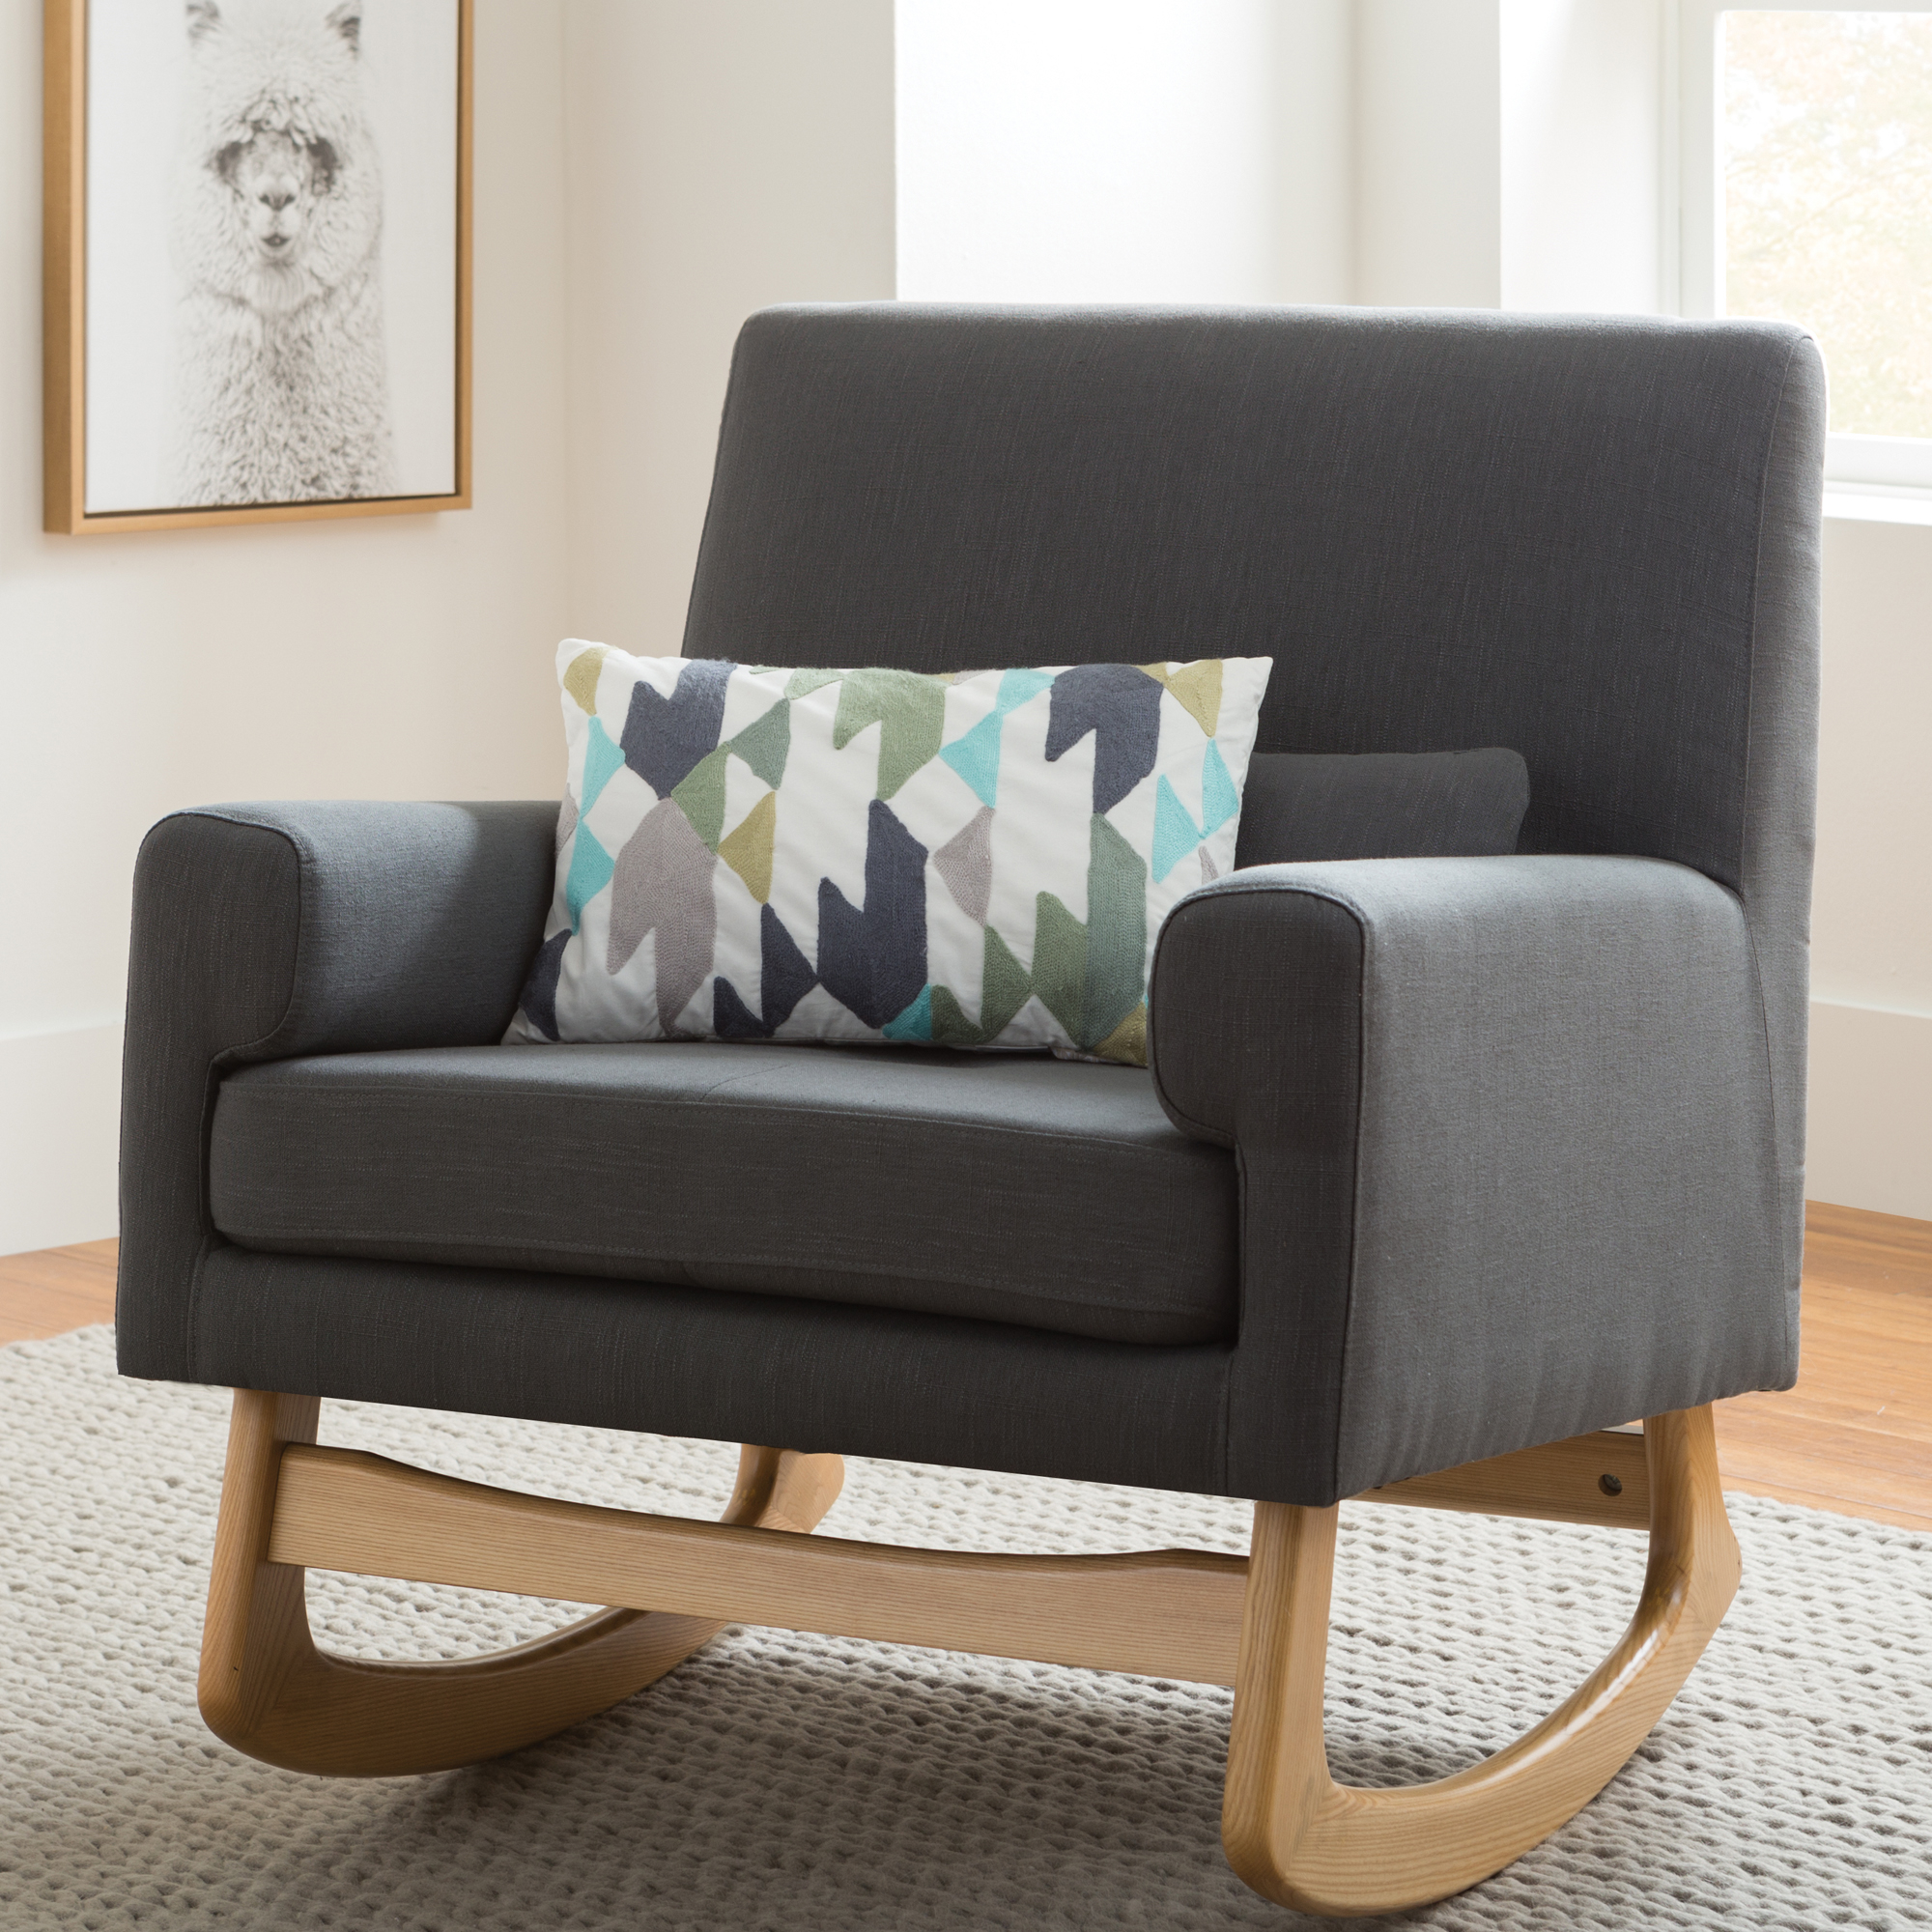 Modern Gliders + Rocking Chairs | Allmodern For Rocking Love Seats Glider Swing Benches With Sturdy Frame (View 11 of 25)